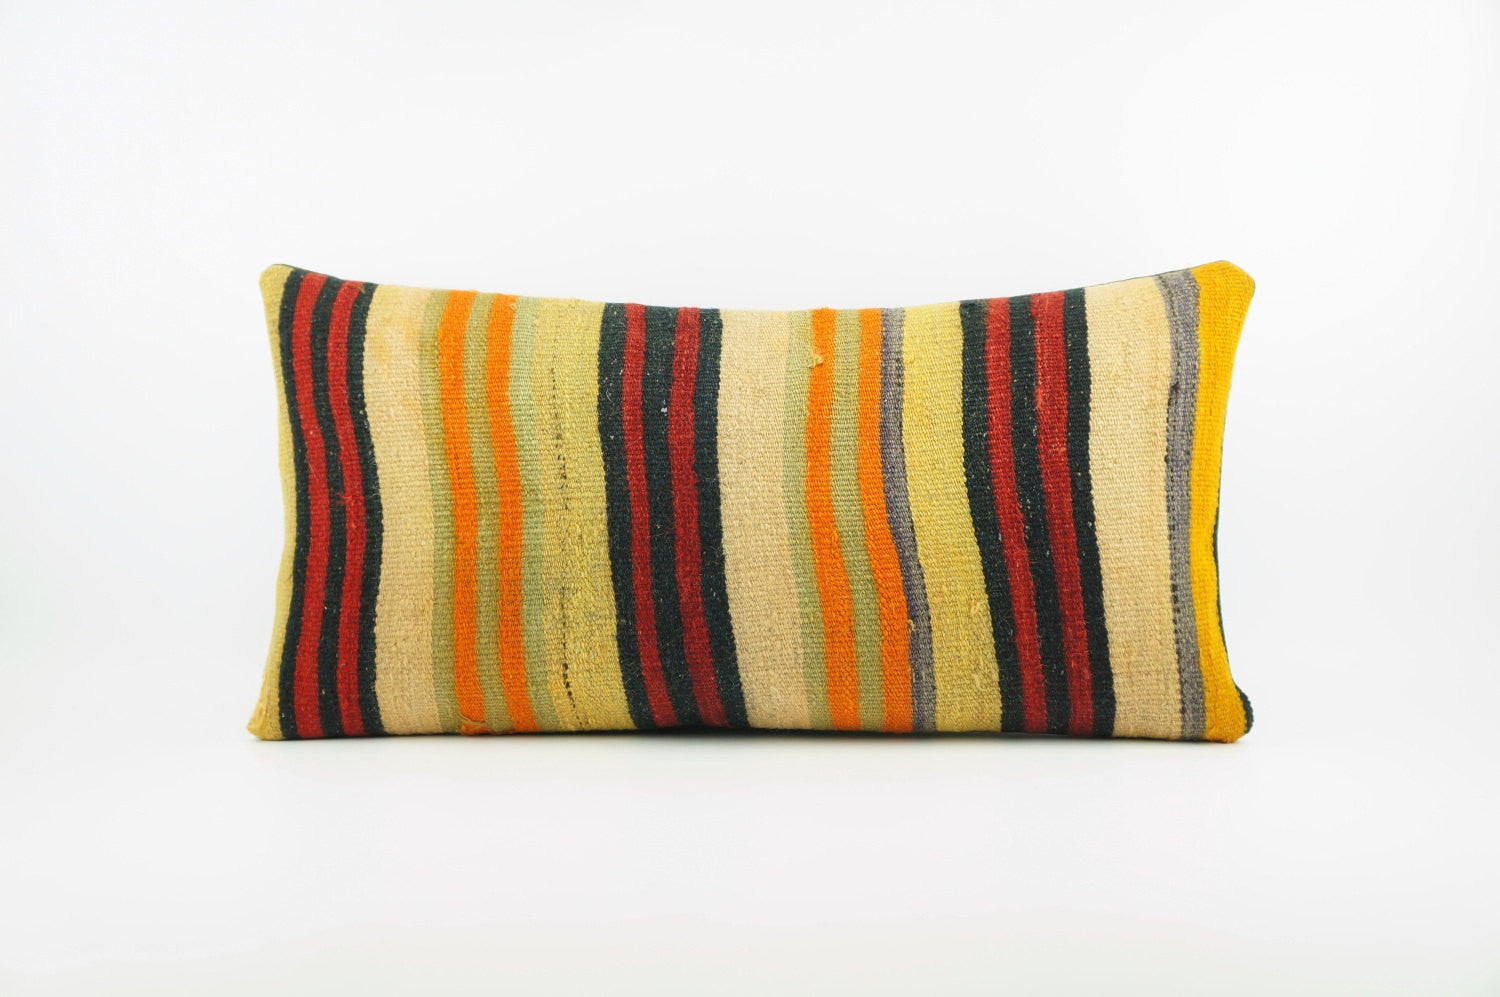 12x24 Ethnic decorative pillow cover , Bohemian pillow case, Modern home decor Striped Multi colour handwoven pillow ,1869 - kilimpillowstore  - 1